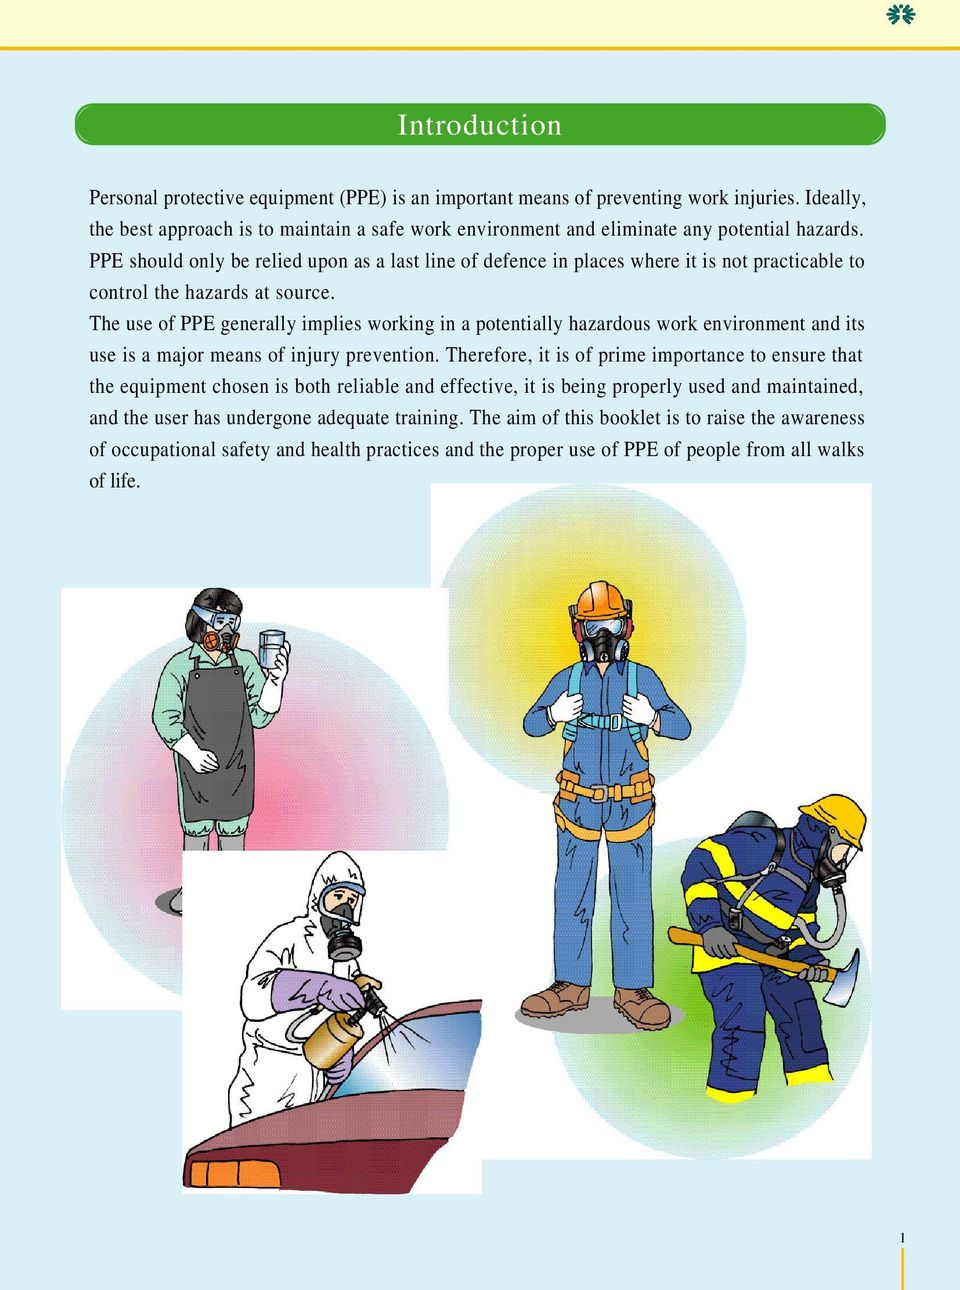 PPE should only be relied upon as a last line of defence in places where it is not practicable to control the hazards at source.